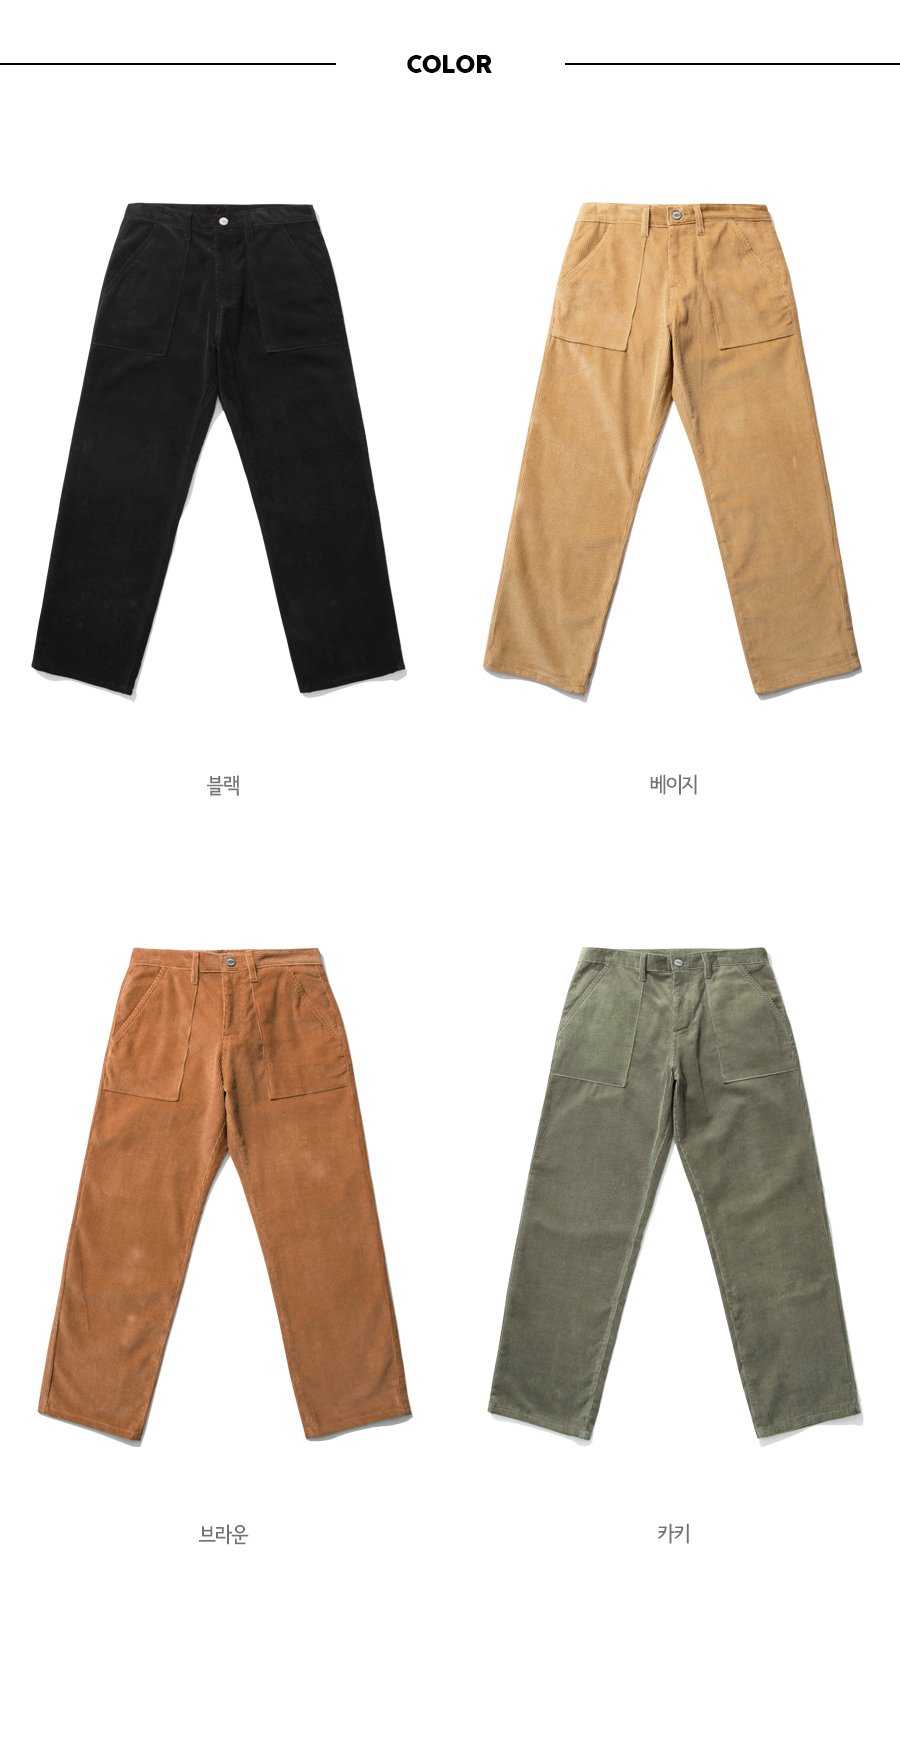 20180910_lettering_corduroy_pants_color_kj.jpg